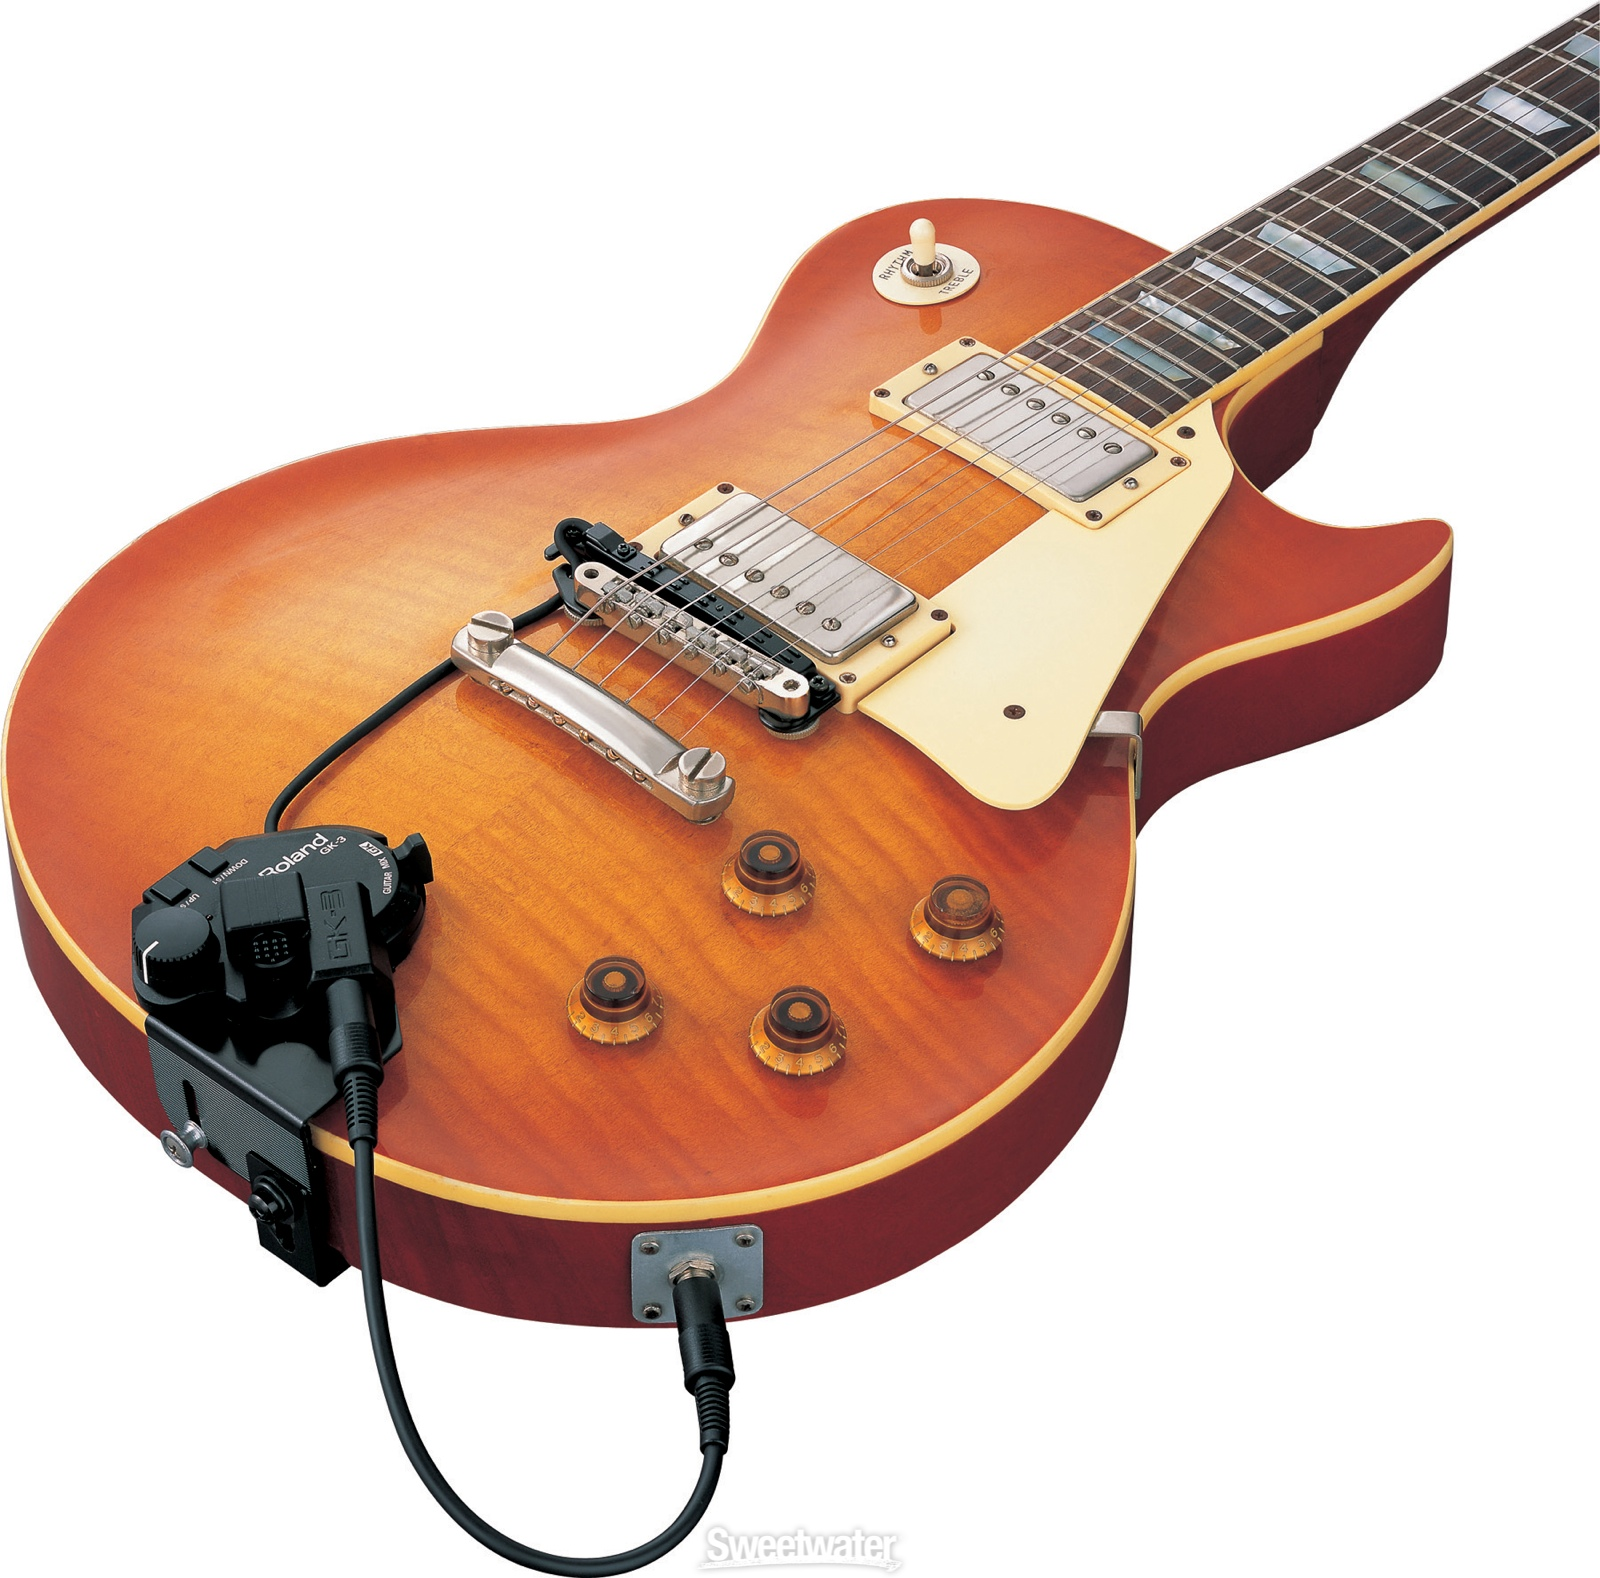 Hexaphonic And Polyphonic Pickups Parker Guitar Wiring Diagram A Godin Few Others With The Roland Stuff Or They Had Separate Unit That Could Be Fitted To Most Any If You Didnt Mind It